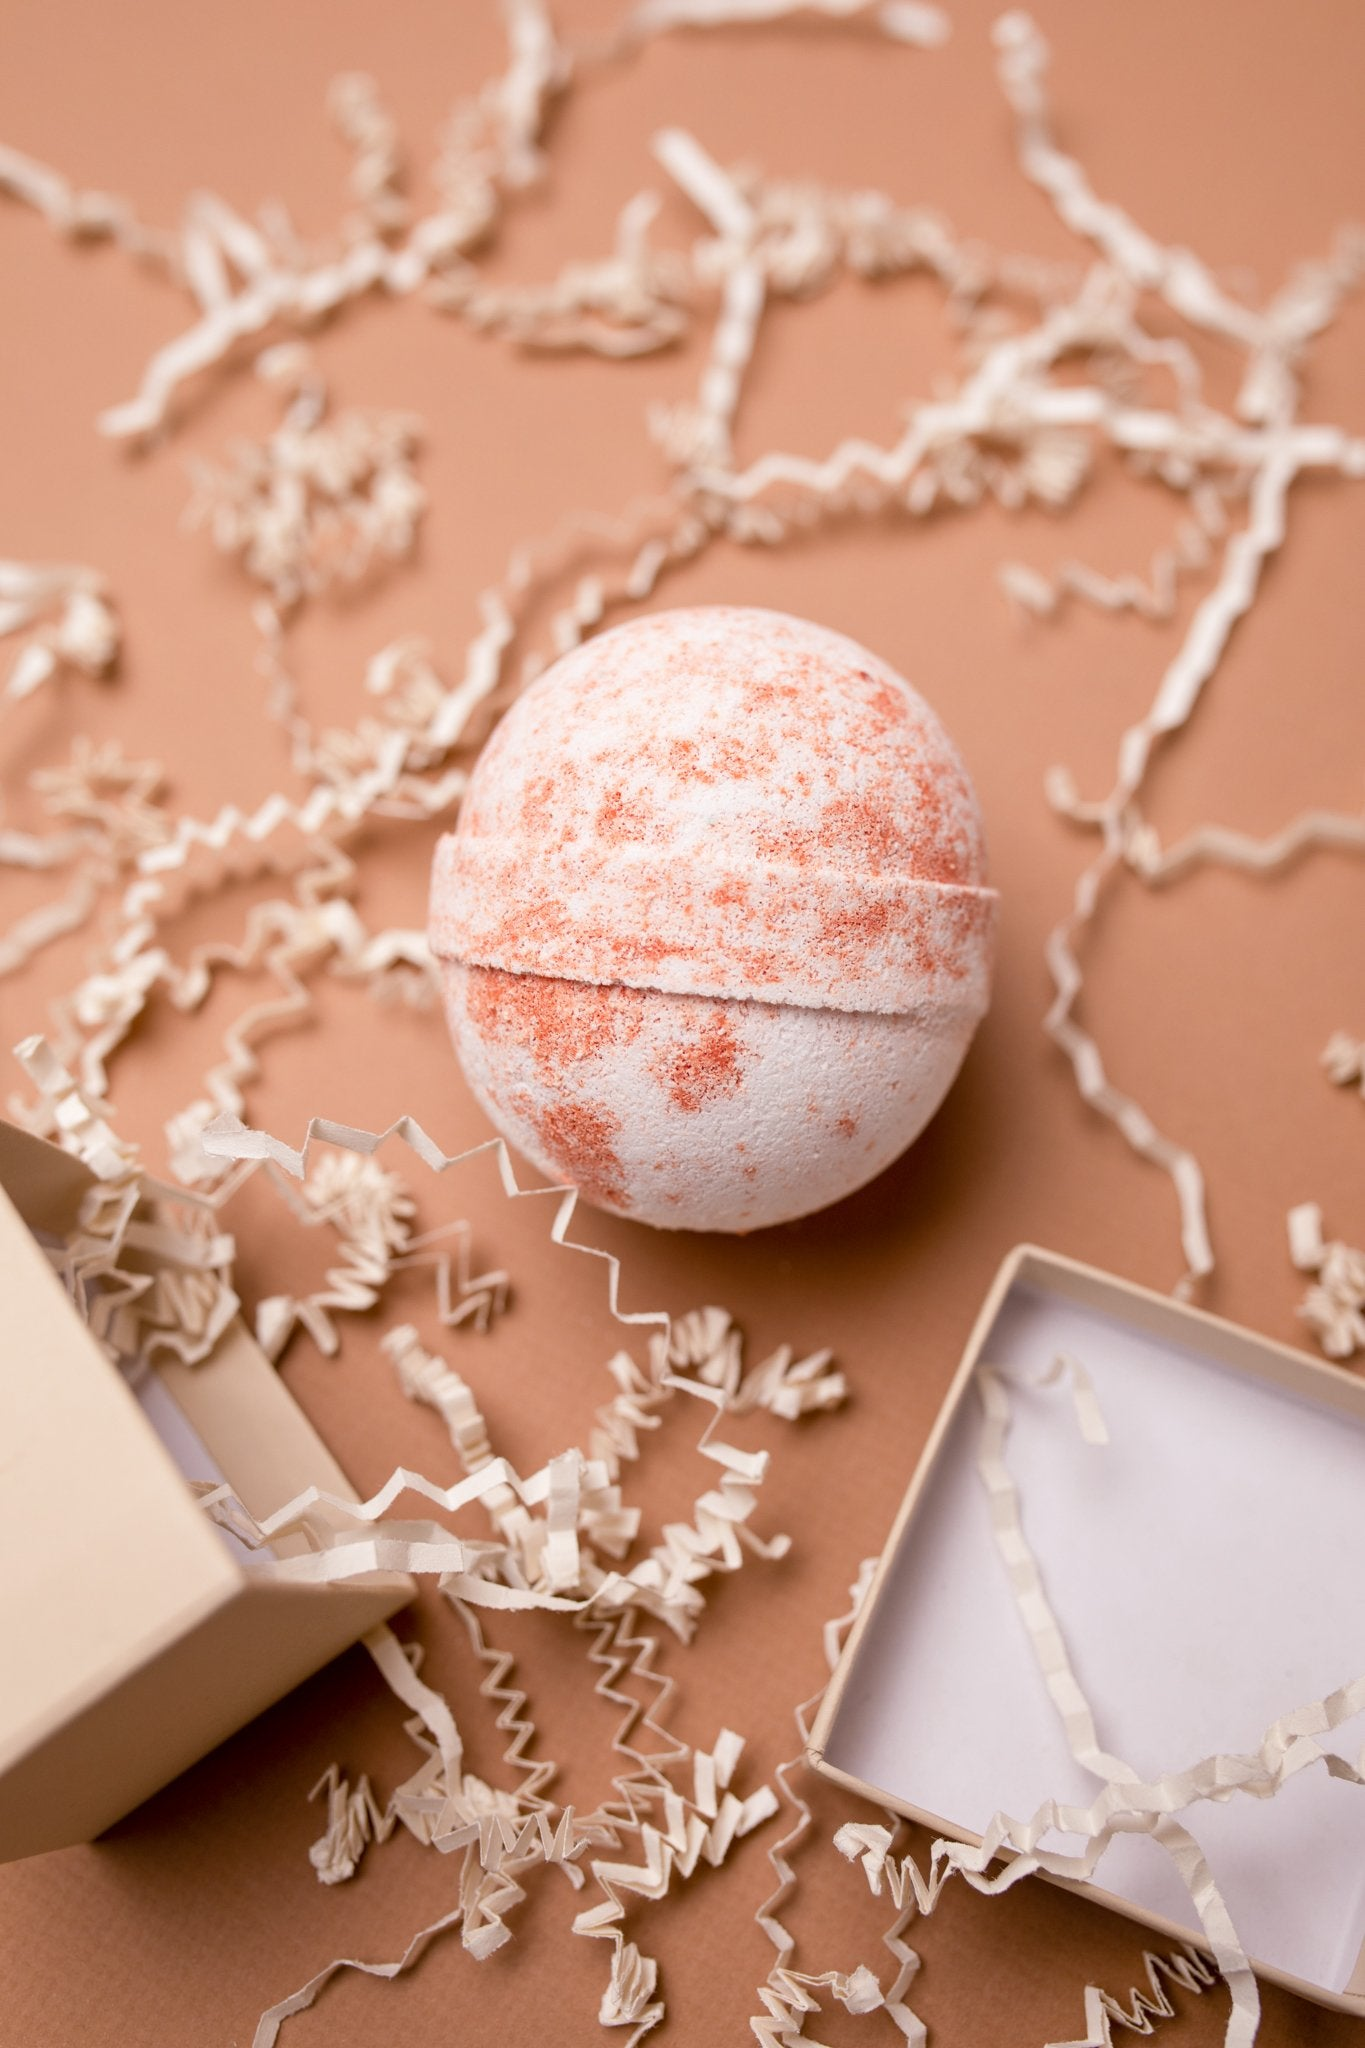 Simple Sultry Bath Bomb